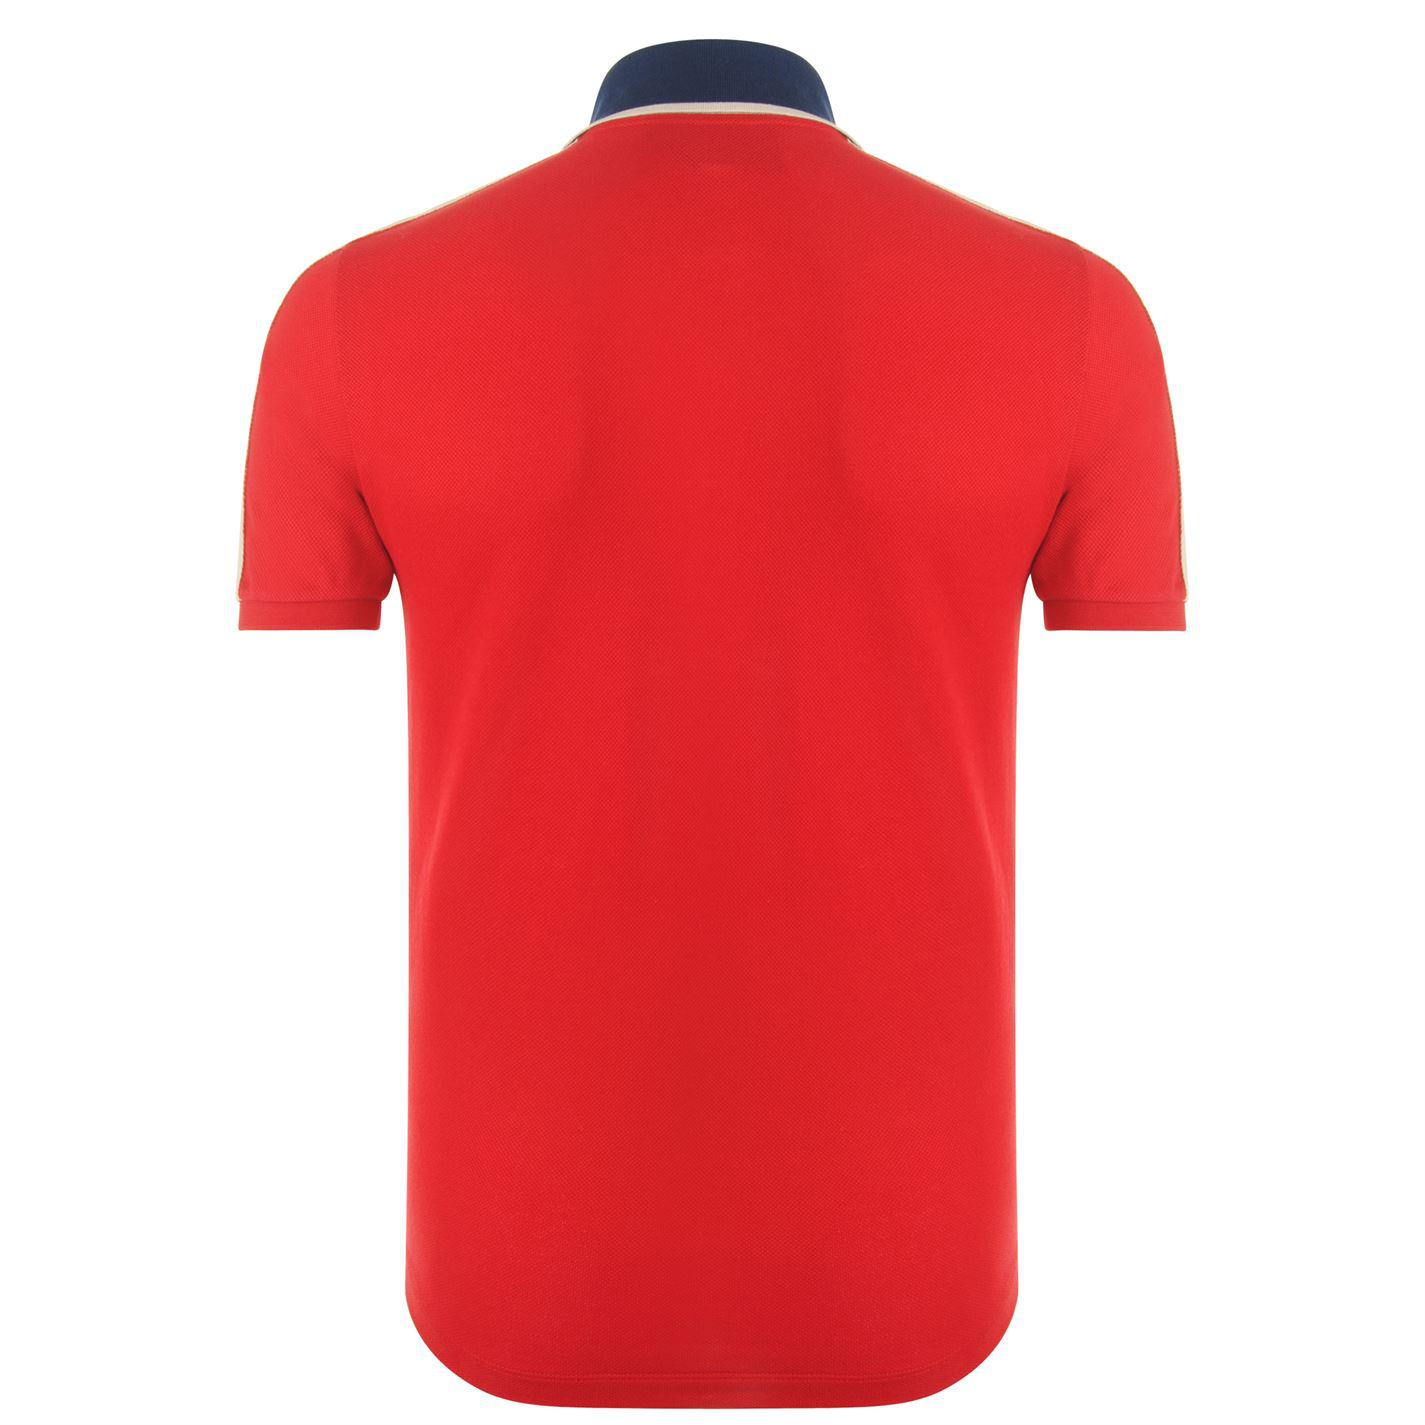 48cba3099 Gucci Ribbon Polo Shirt in Red for Men - Lyst